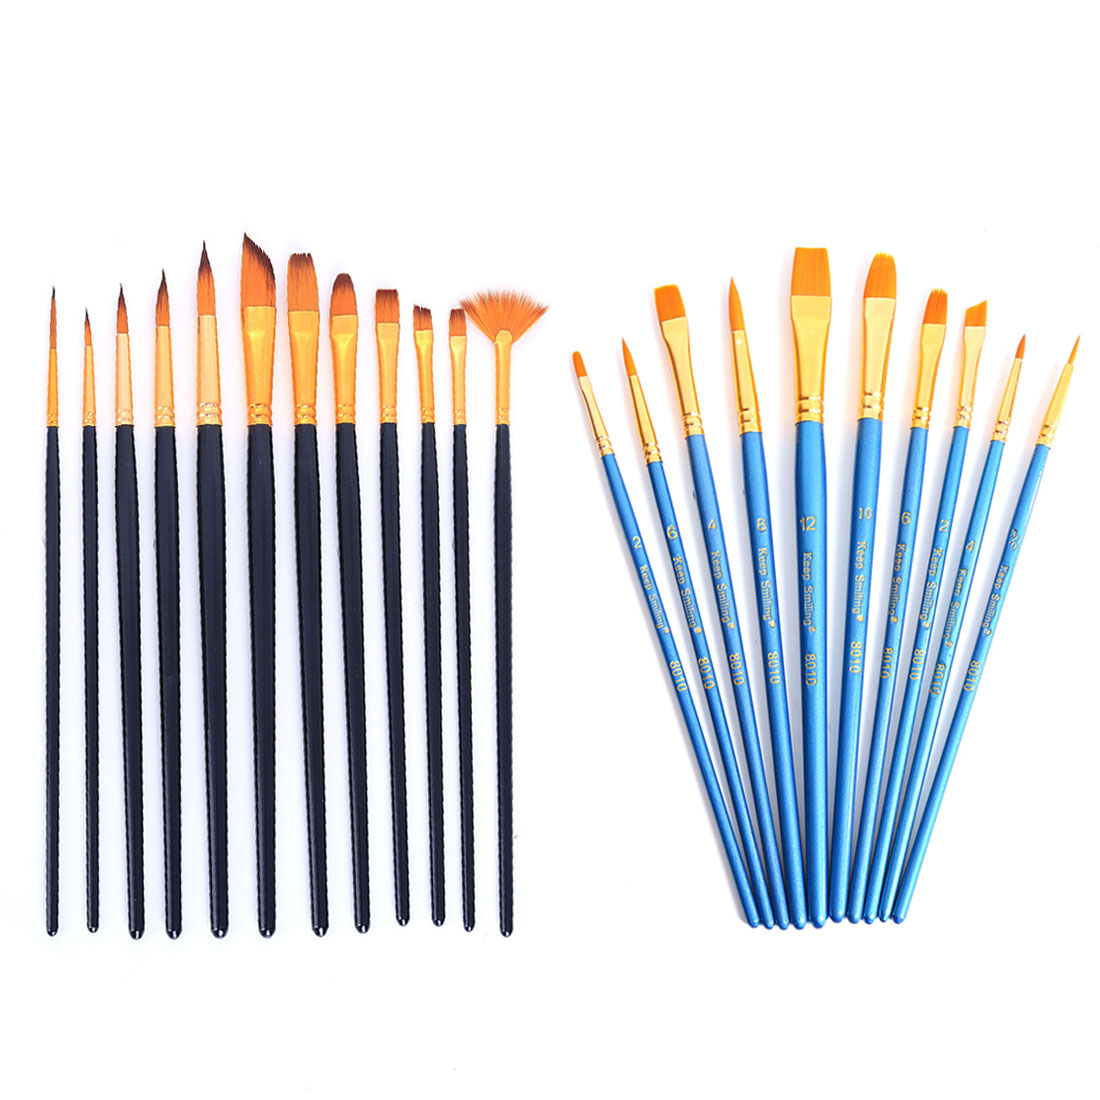 22Pcs Nylon Hair Paint Brushes Set For Gouache / Acrylic / Oil Model Building Tool Sets Toys & Hobbies Black Blue